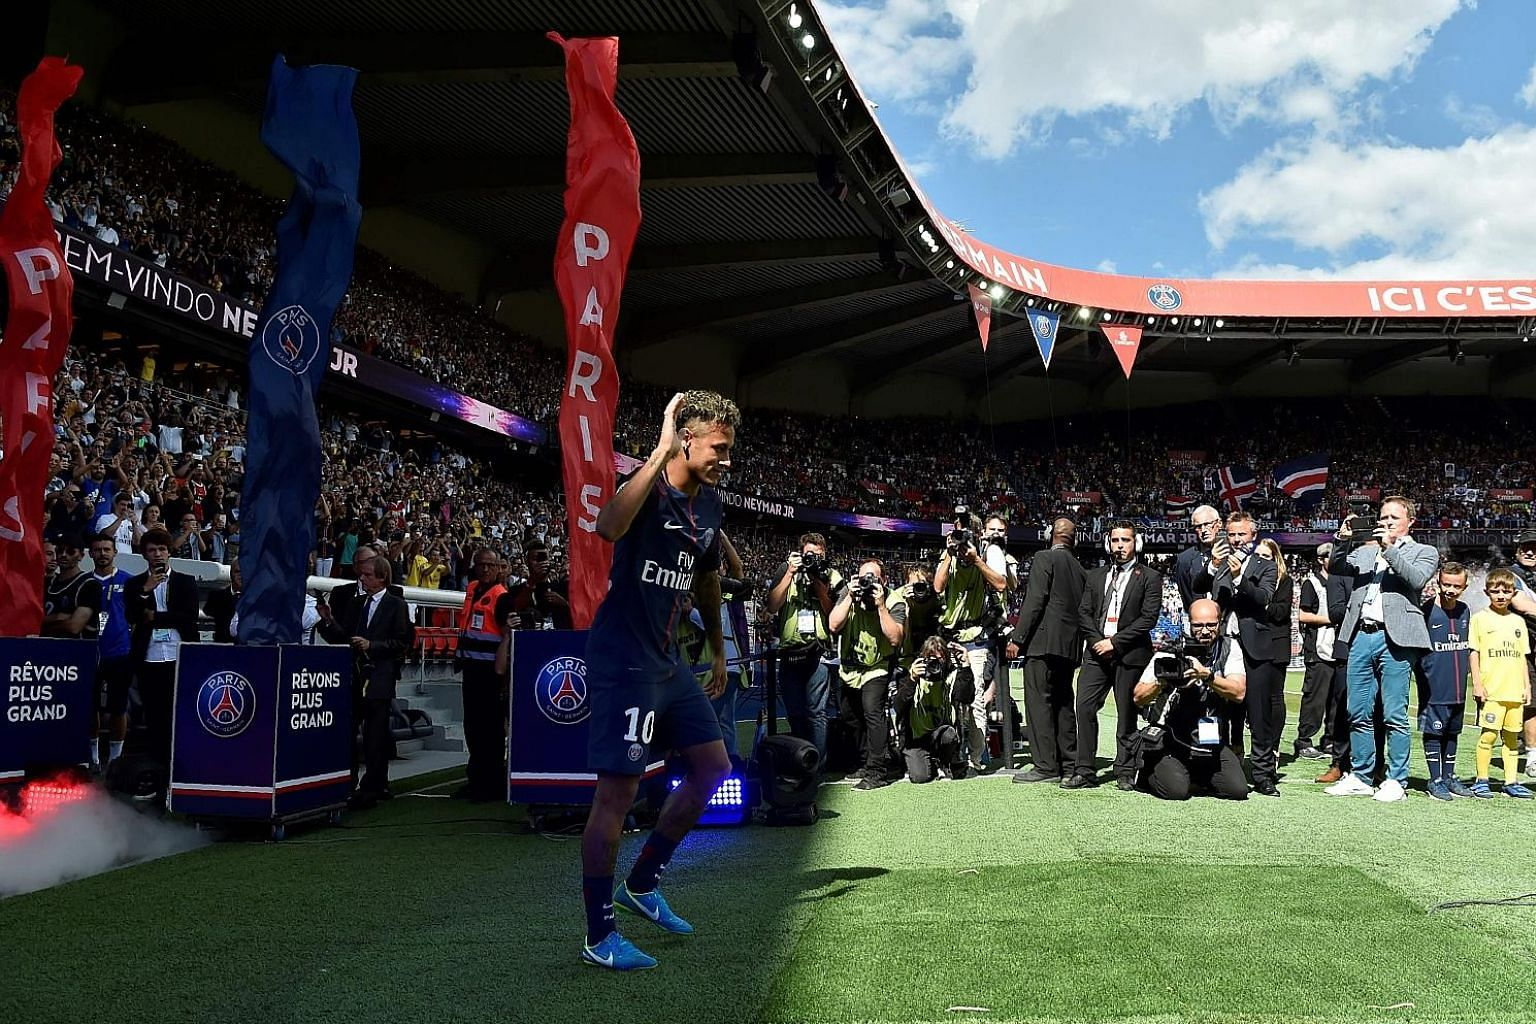 World-record signing Neymar waving to the adoring Paris Saint-Germain fans as he was presented at Parc des Princes ahead of PSG's Ligue One opener against Amiens.